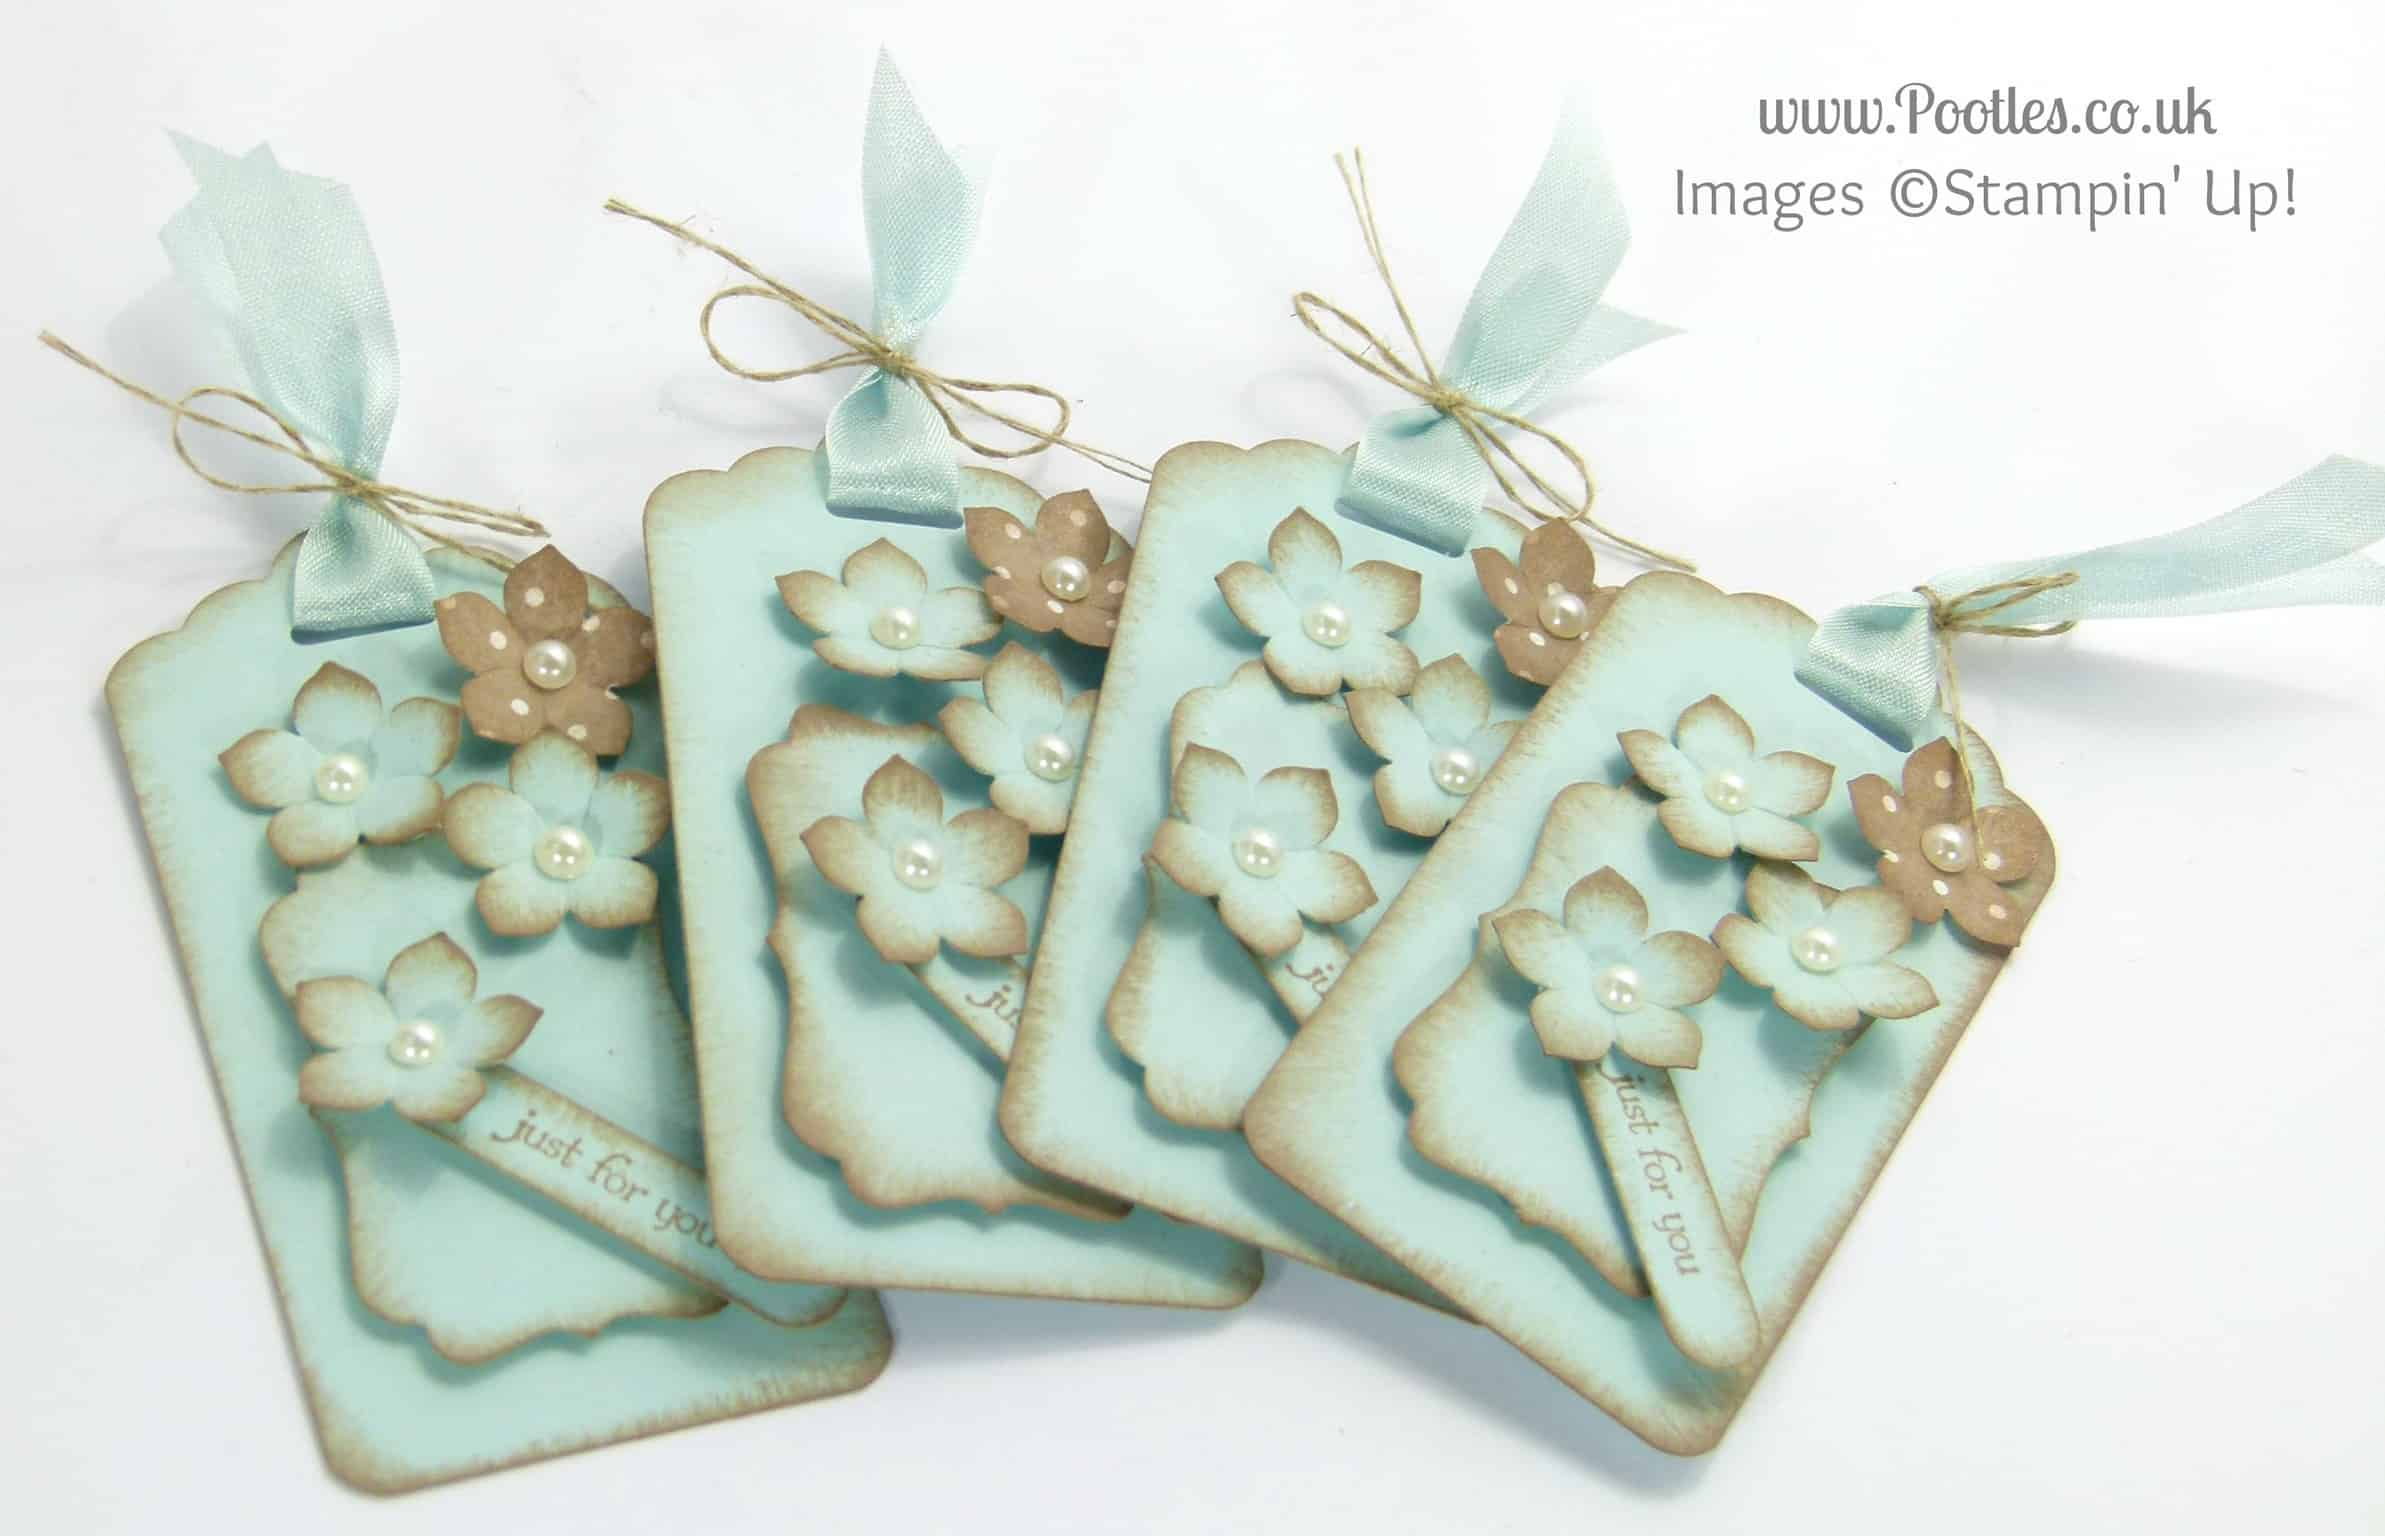 Stampin' Up! UK Independent Demonstrator Pootles - A Gift Box of Tags (the tags!)